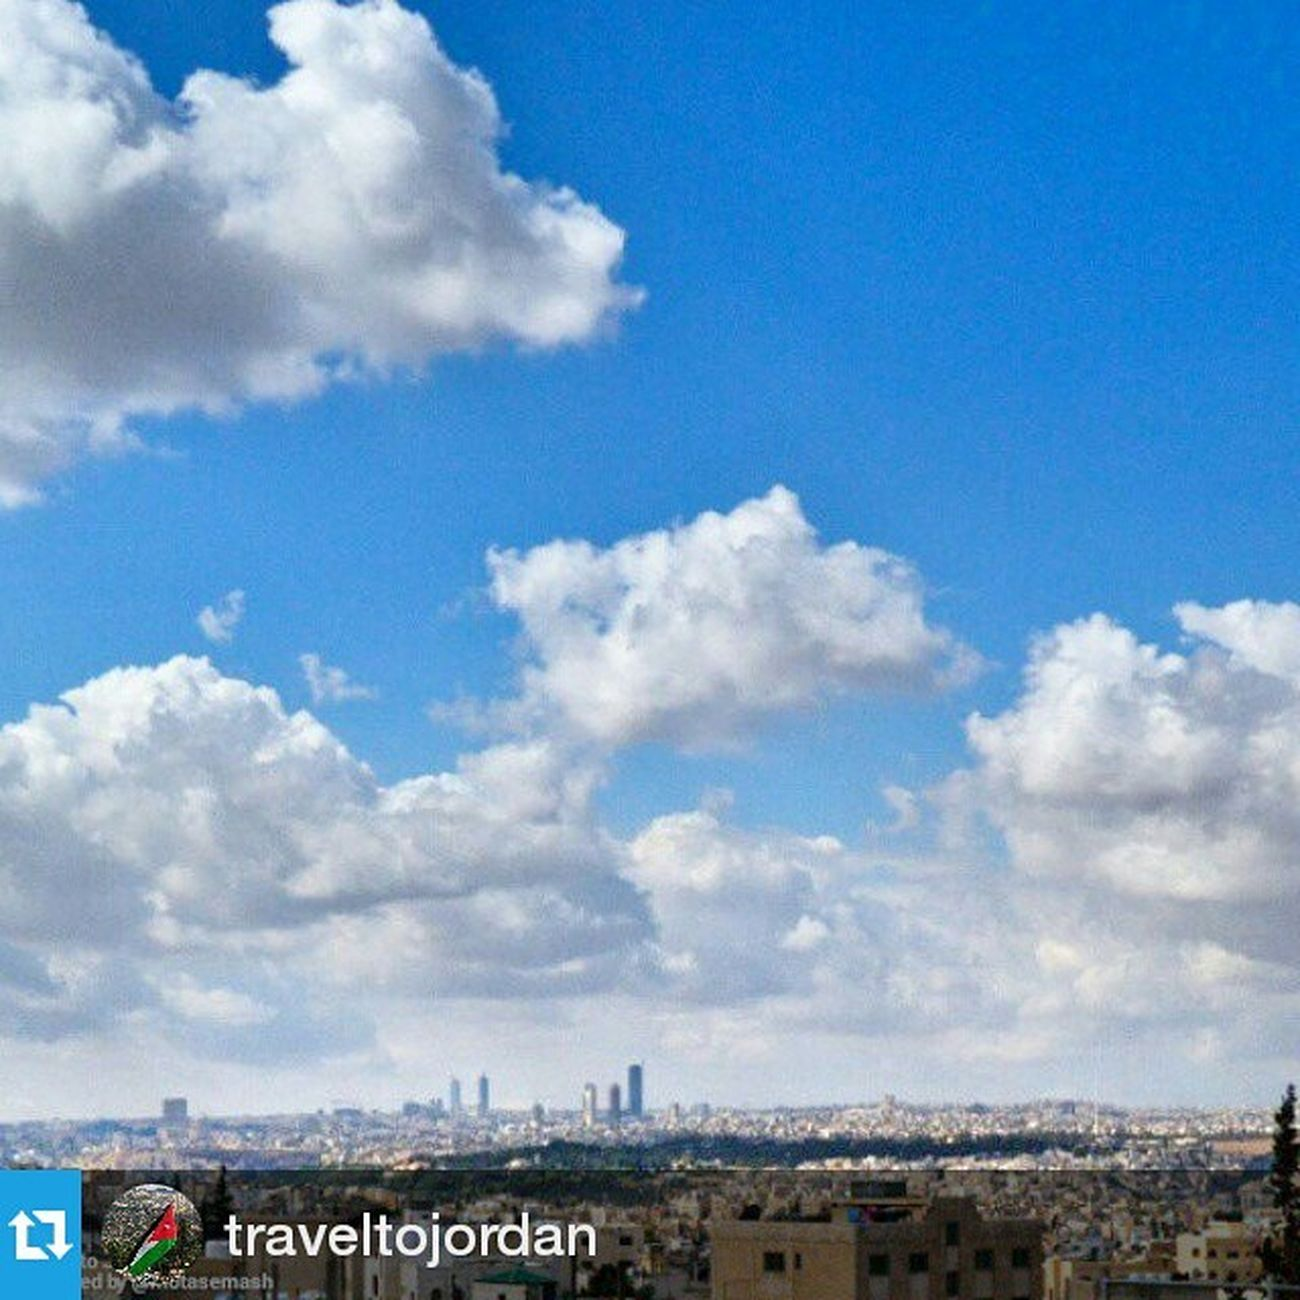 Thank you @traveltojordan Repost @traveltojordan ・・・ Captured by @Motasemash Amman - عمان TraveltoJordan Lovejo Travel